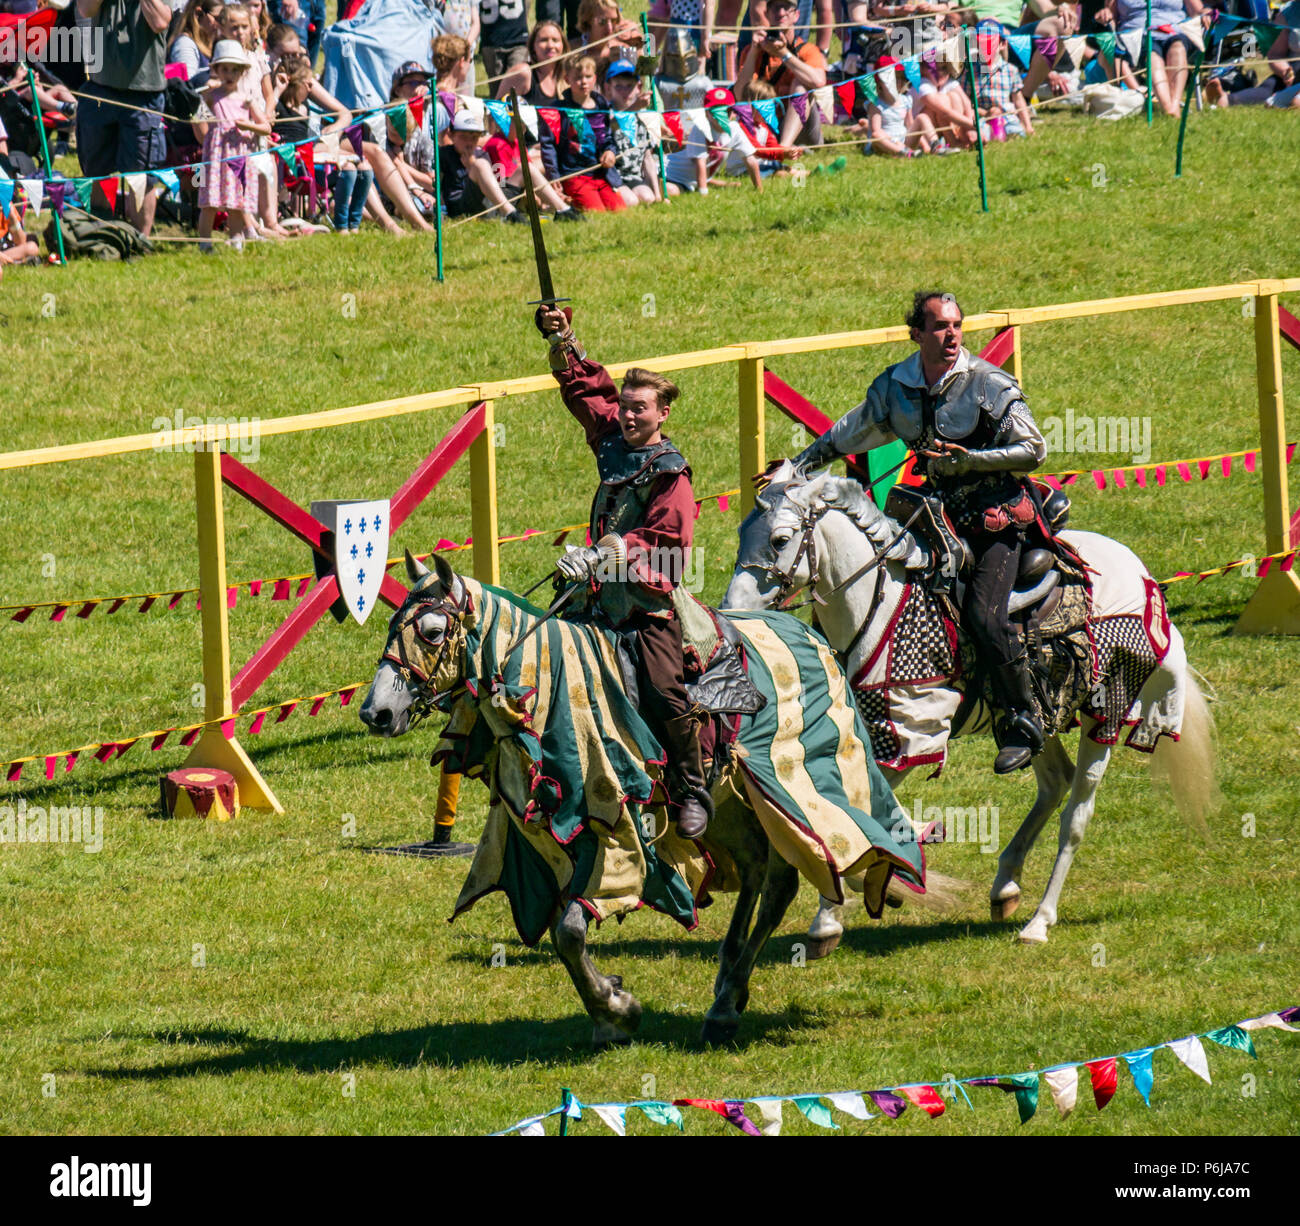 Jousting and Medieval Fair at Linlithgow Palace, Linlithgow, Scotland, United Kingdom, 30th June 2018. Historic Environment Scotland kick off their summer entertainment programme with a fabulous display of Medieval jousting in the grounds of the historic castle. The family fun day includes living history camps, medieval games, crafts, archery, and falconry. The jousting is performed by Les Amis D'Onno equine stunt team based in the Borders. Knight Sir Checkmate Fitzpercy, played by Jacob Martin, Knight Sir Archibald Douglas, played by  Bob Emmerson, ride their horses - Stock Image